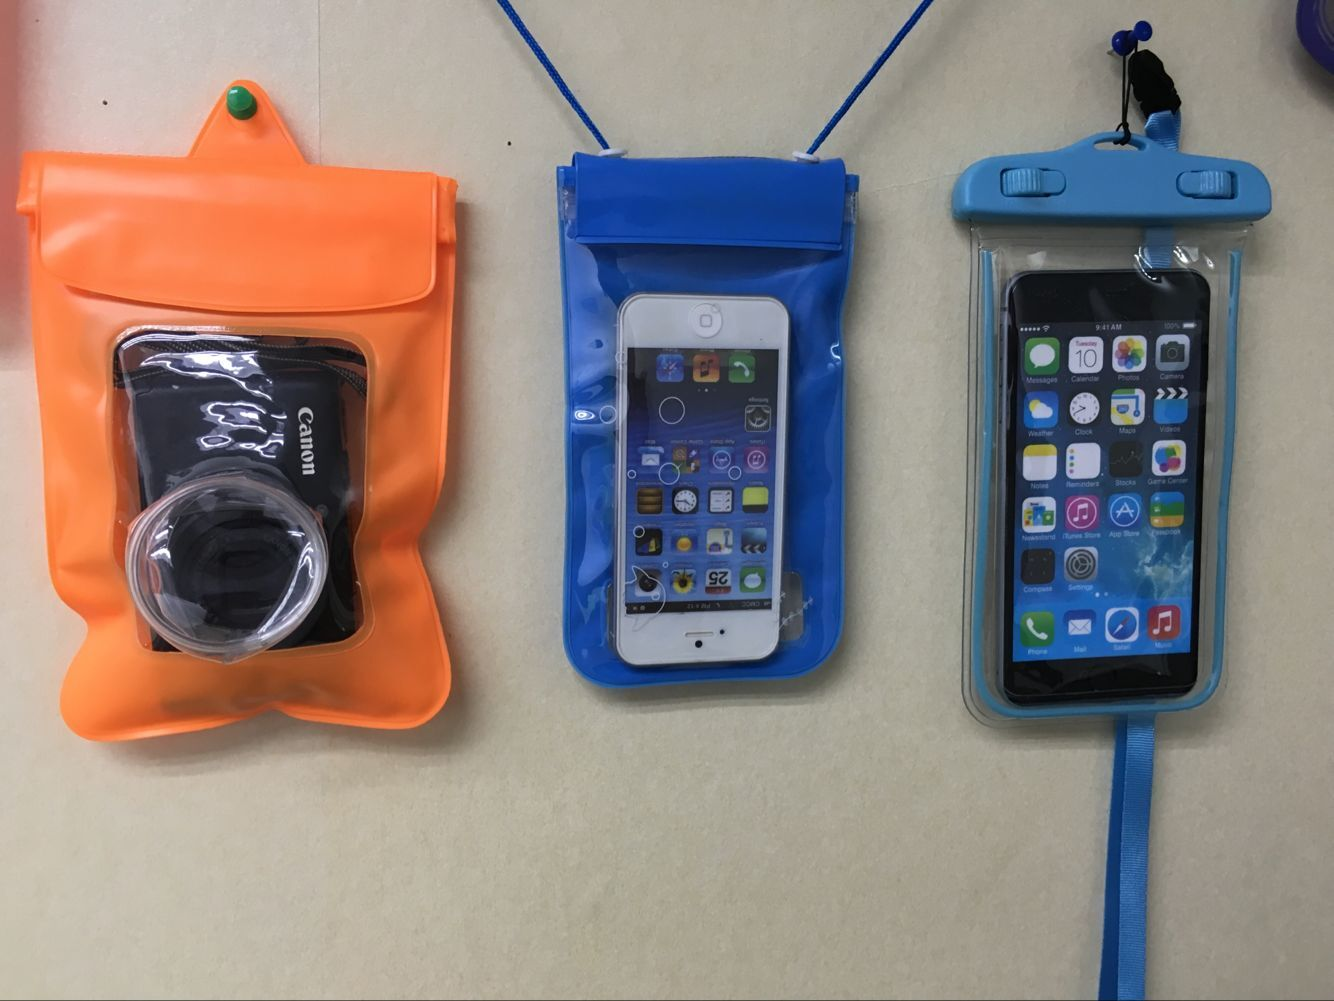 waterproof phone case devided